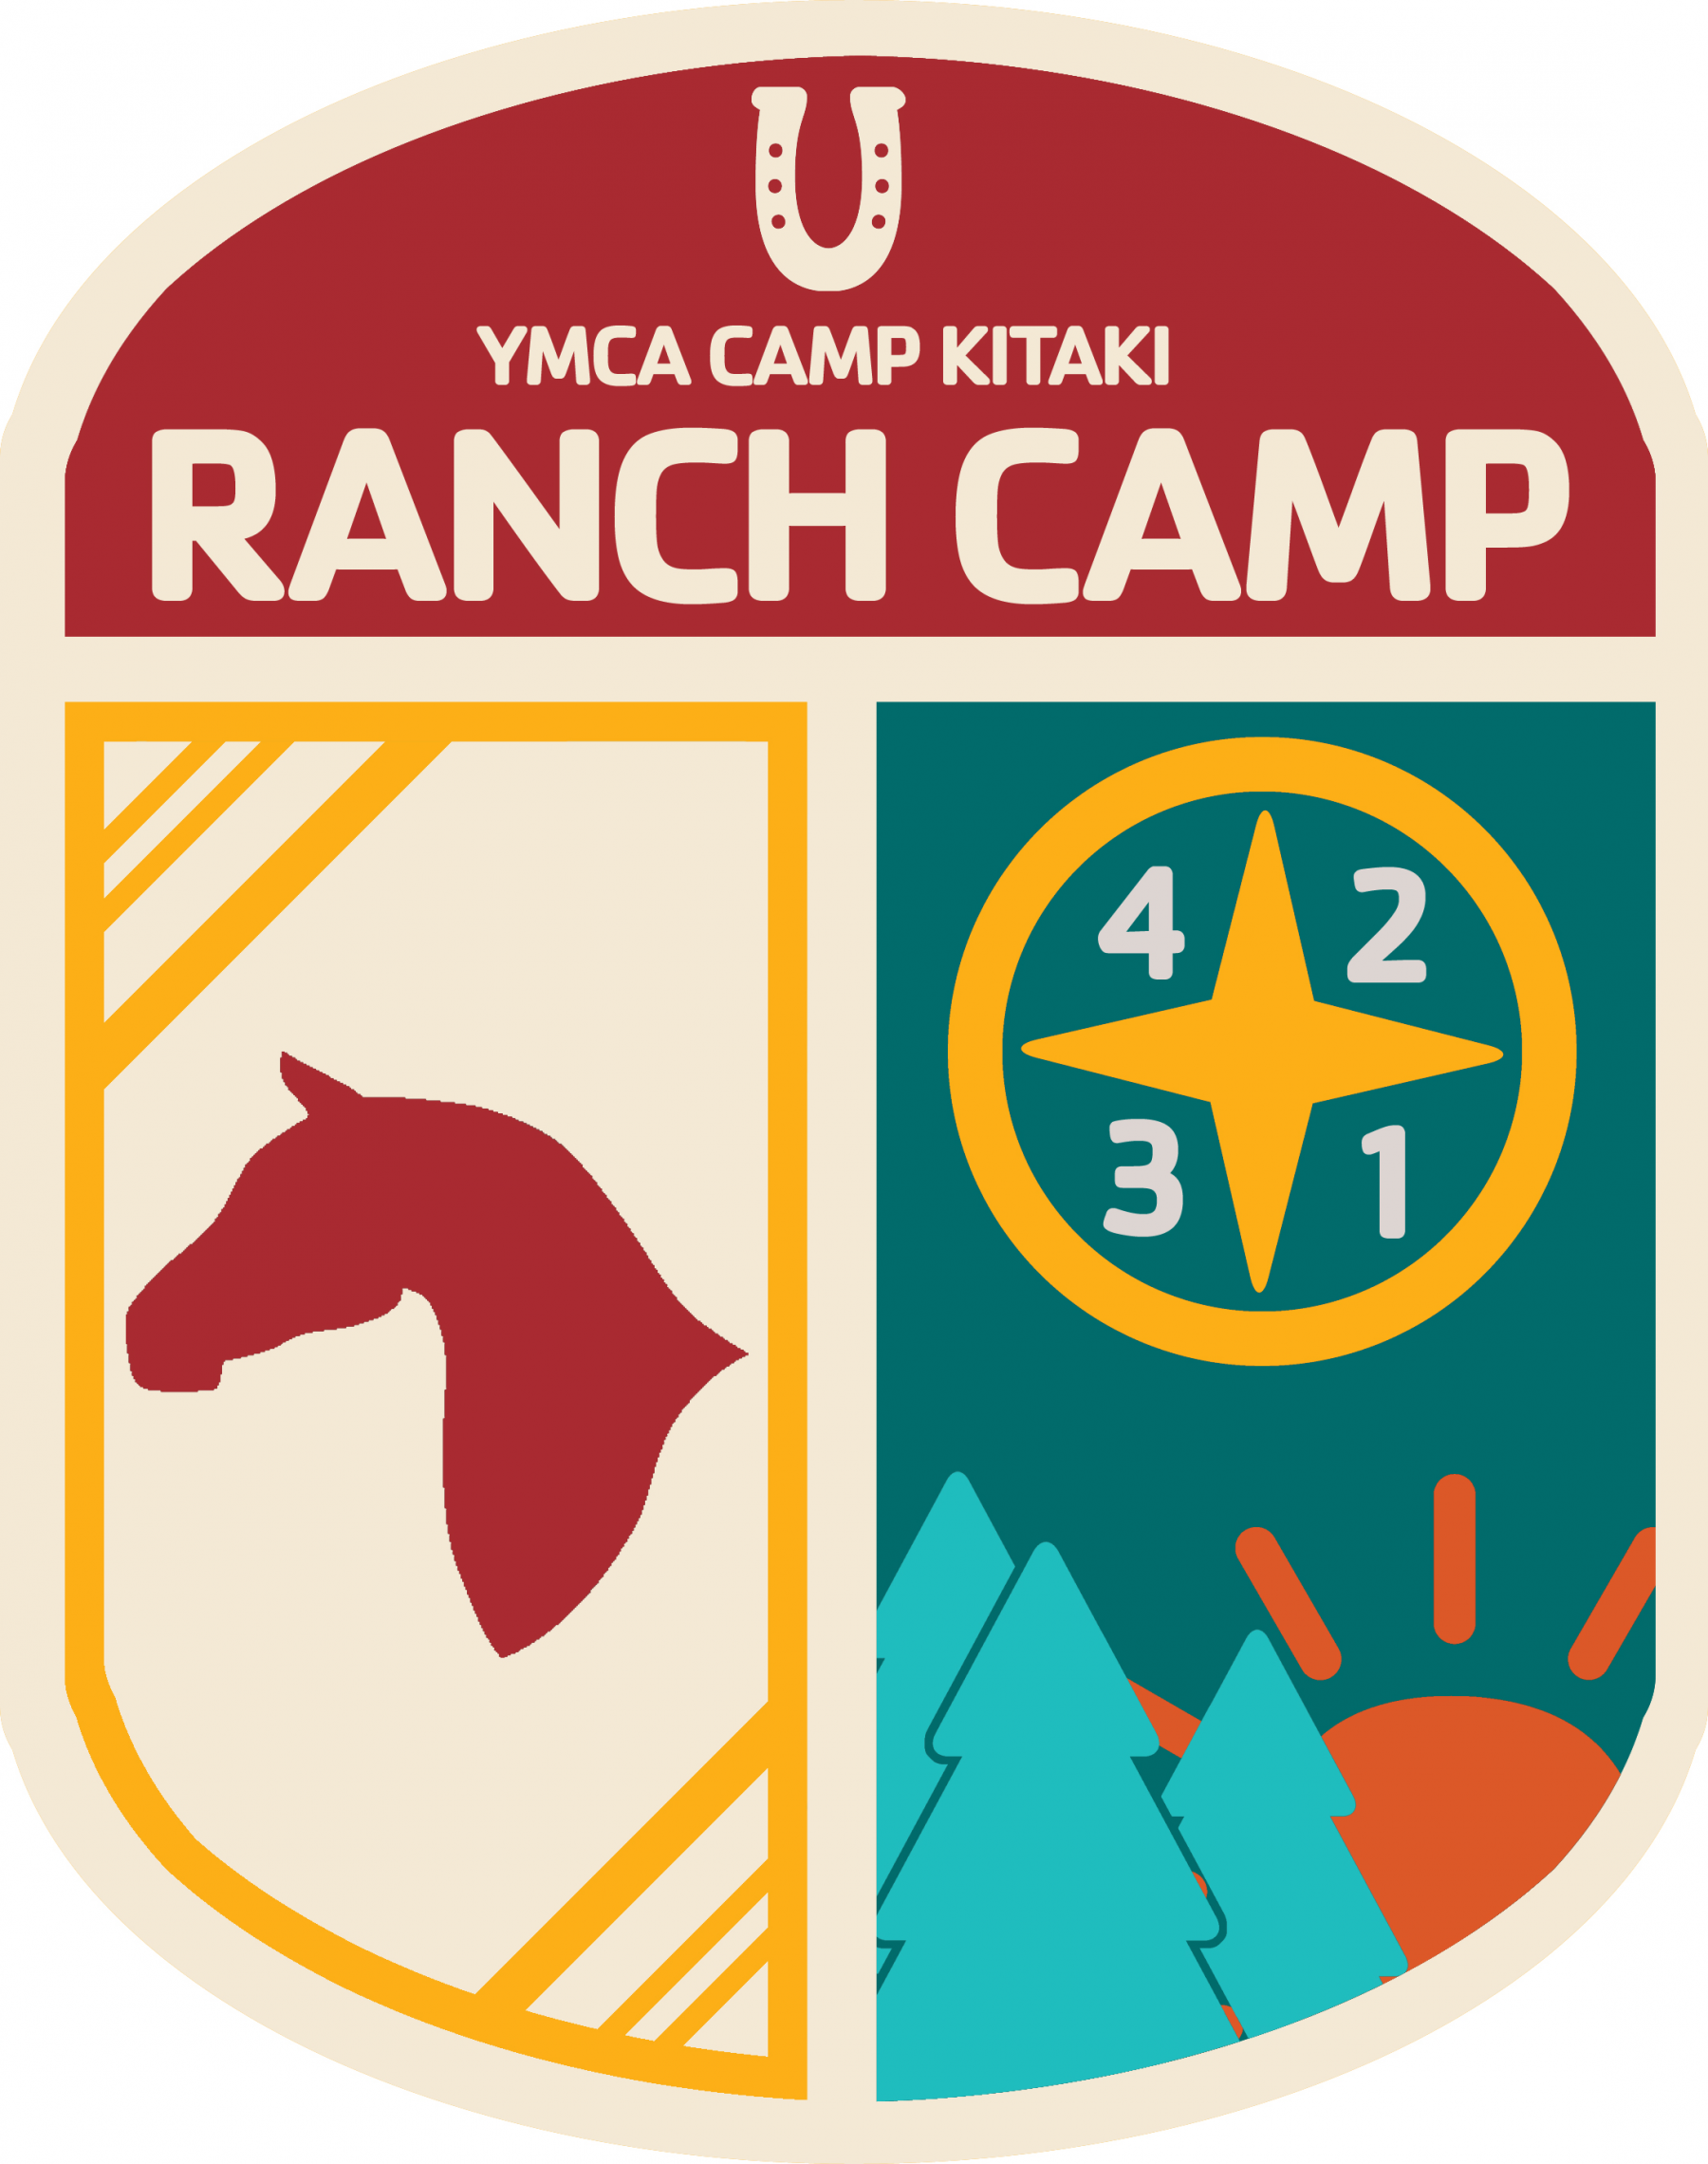 A program badge for Ranch Camp